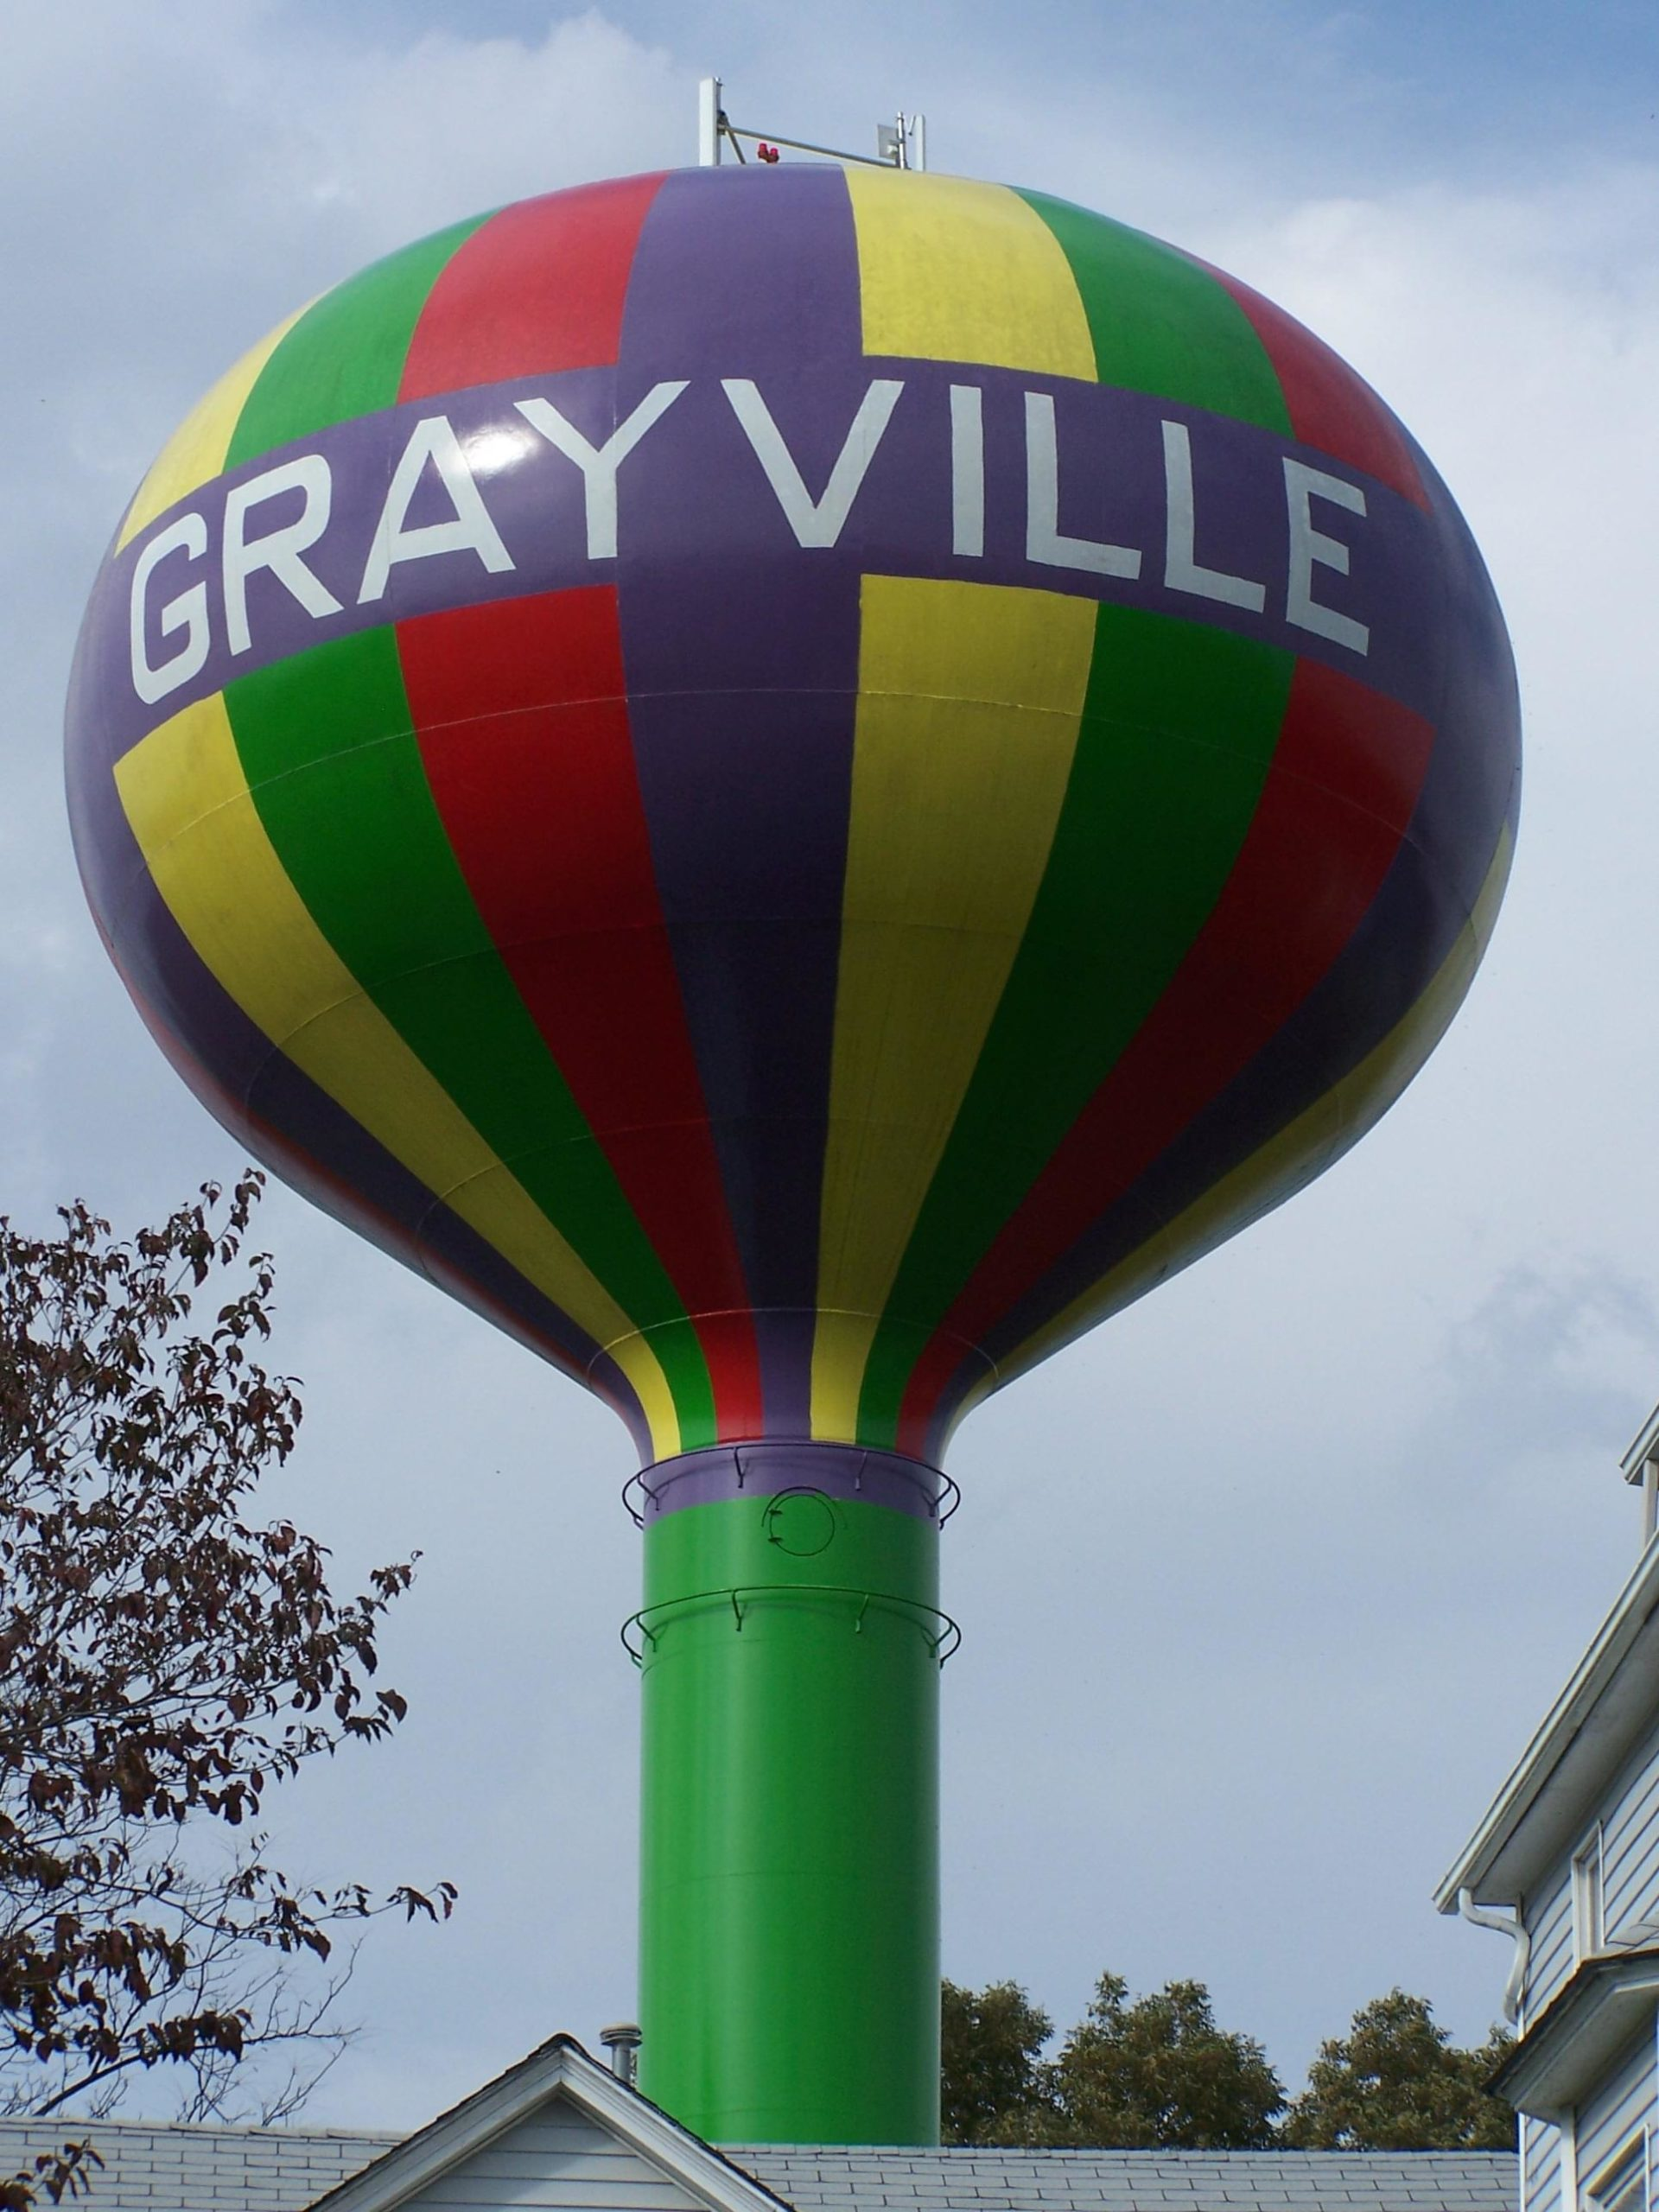 Grayville City Council Held a Public Hearing and Regular Session Meeting Monday Night